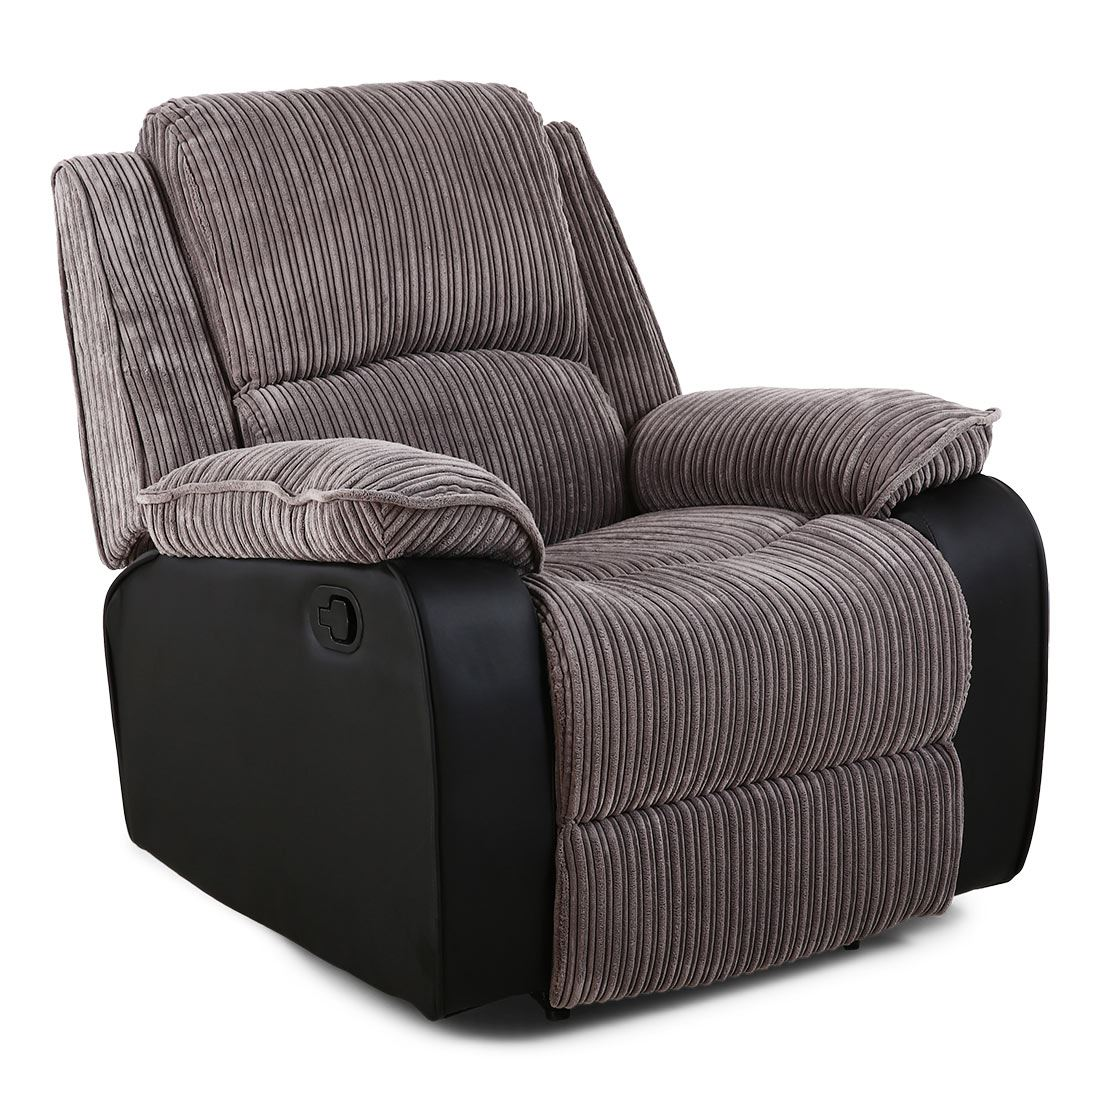 Reclining Lounge Chair Postana Jumbo Cord Fabric Recliner Armchair Sofa Lounge